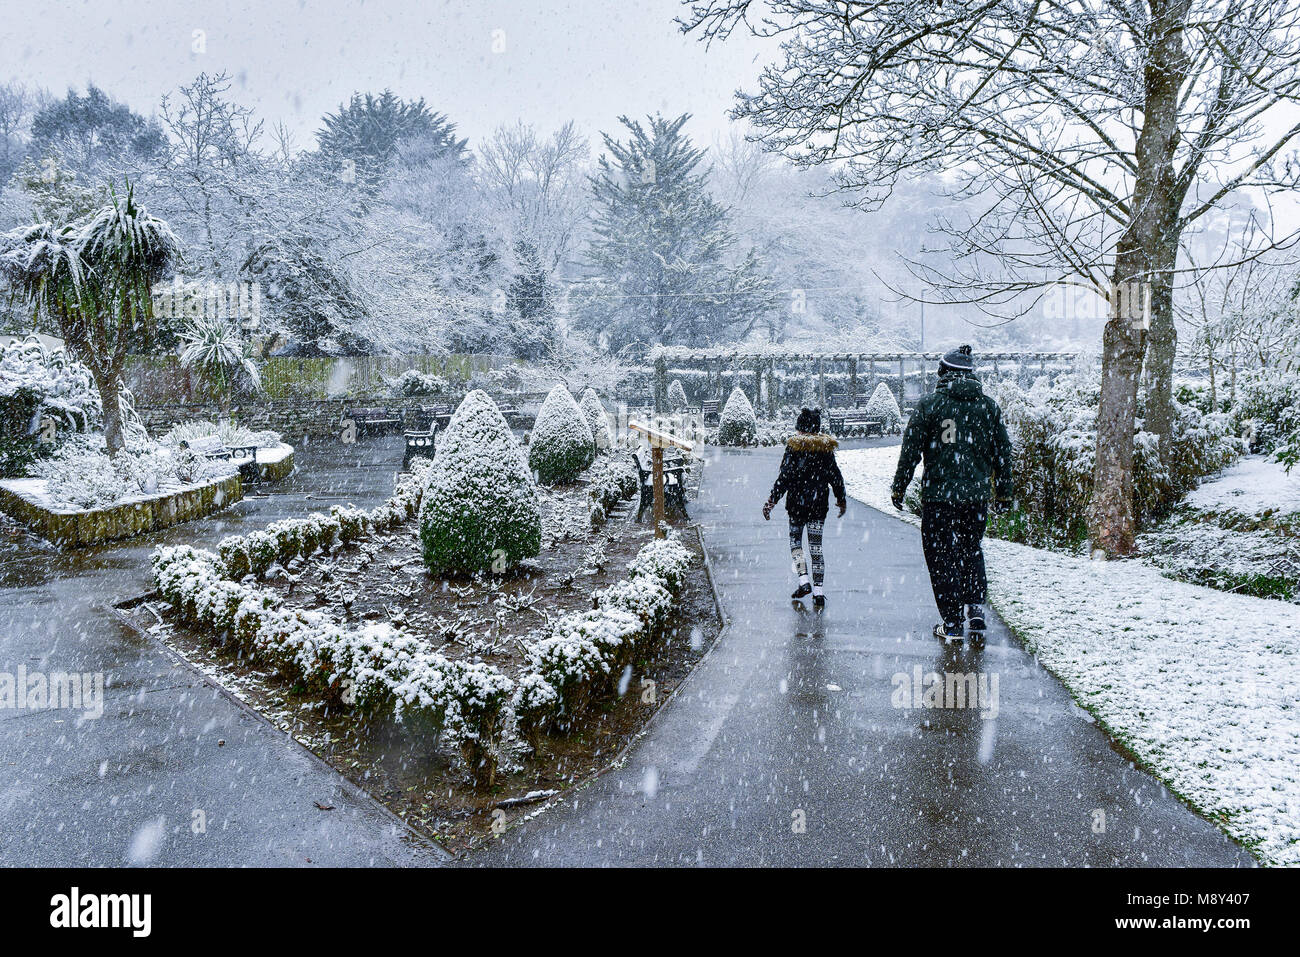 People walking through a heavy snowfall in Trenance Park in Newquay Cornwall. - Stock Image